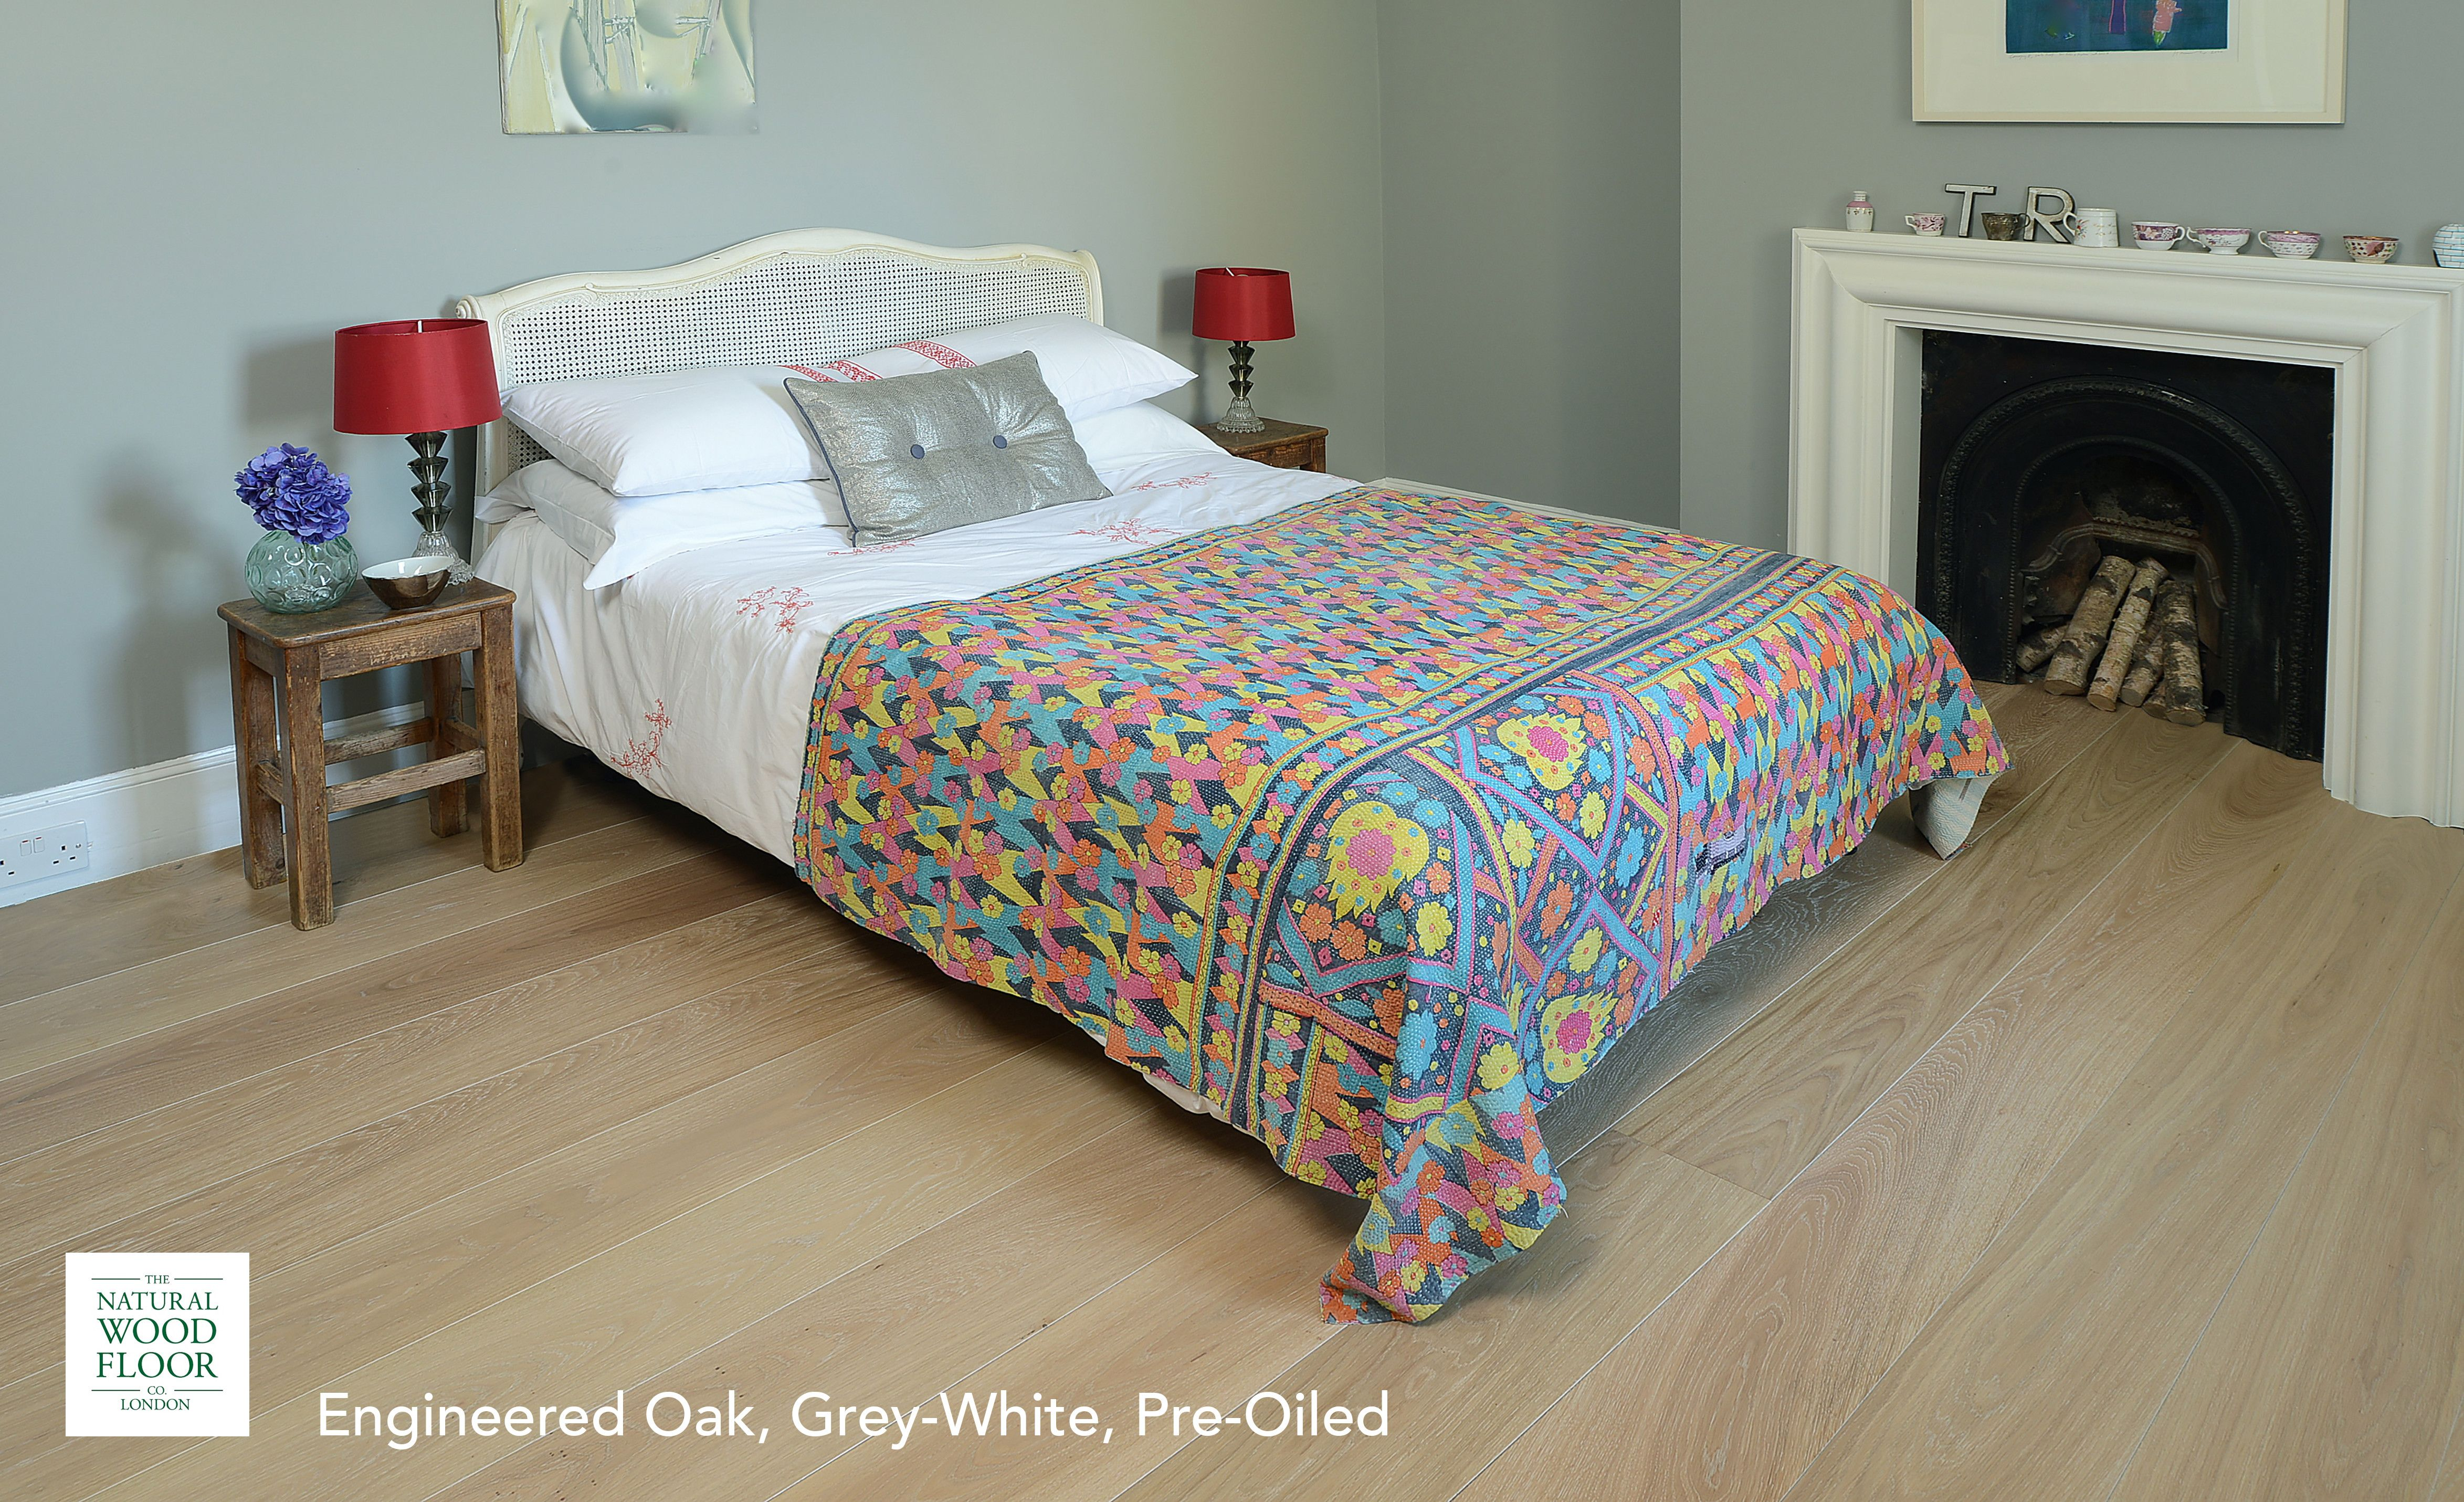 The smoky tones of the Grey White Preoiled Engineered Oak